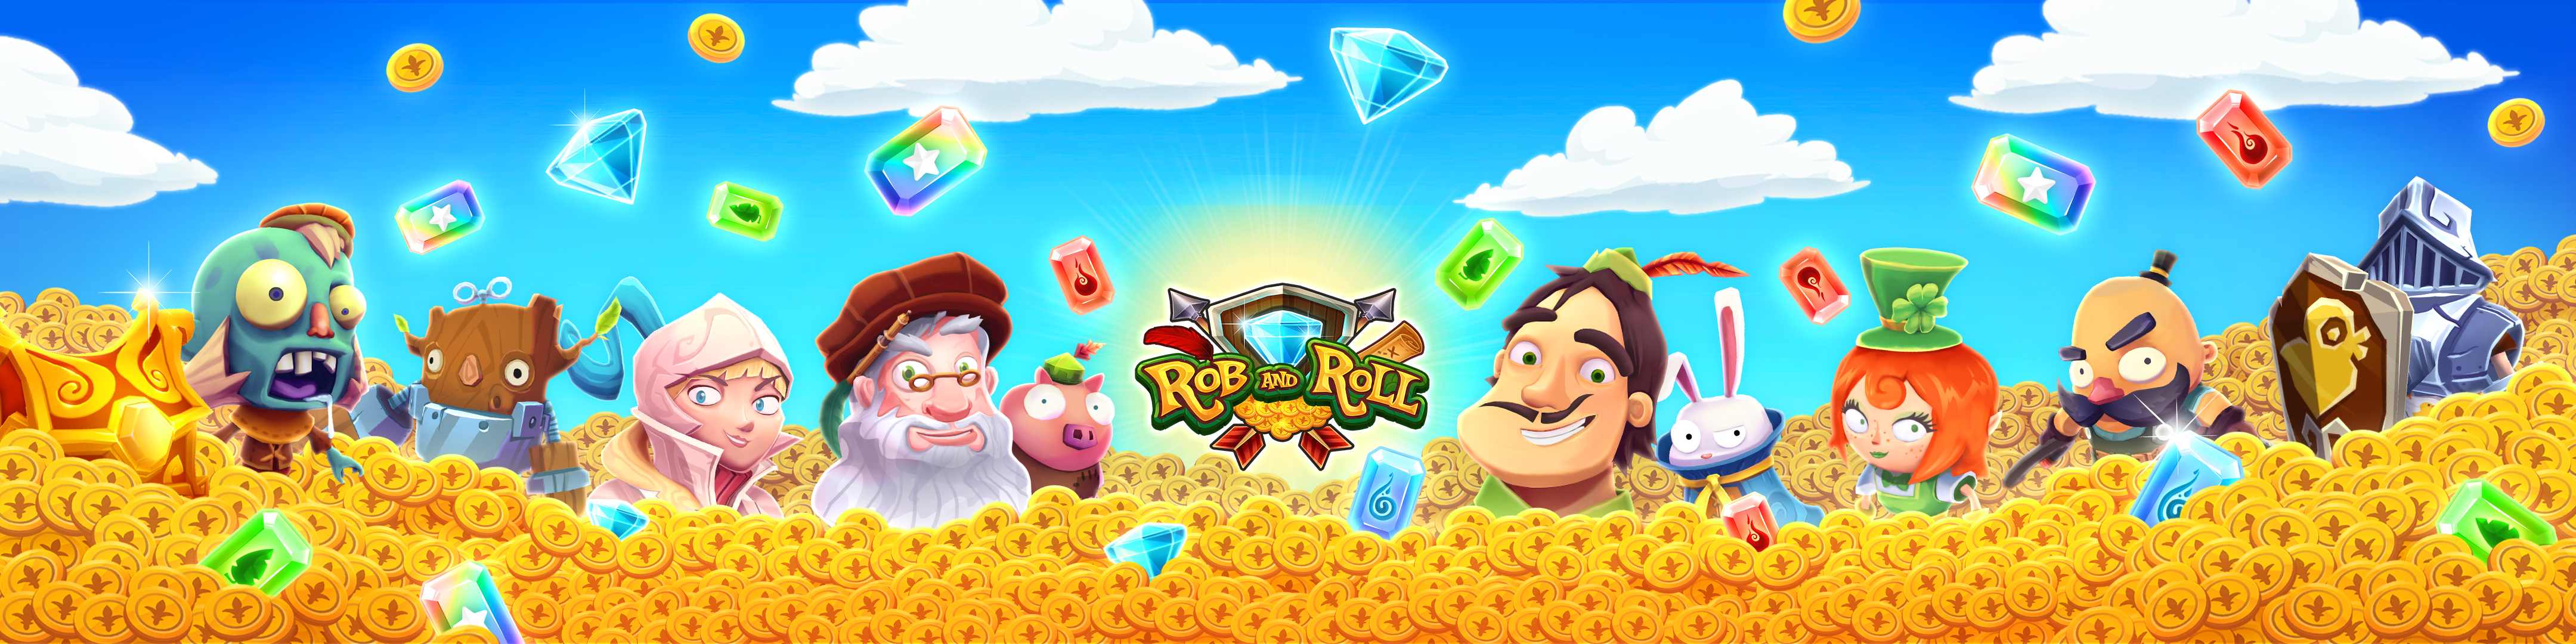 rob-and-roll-banner